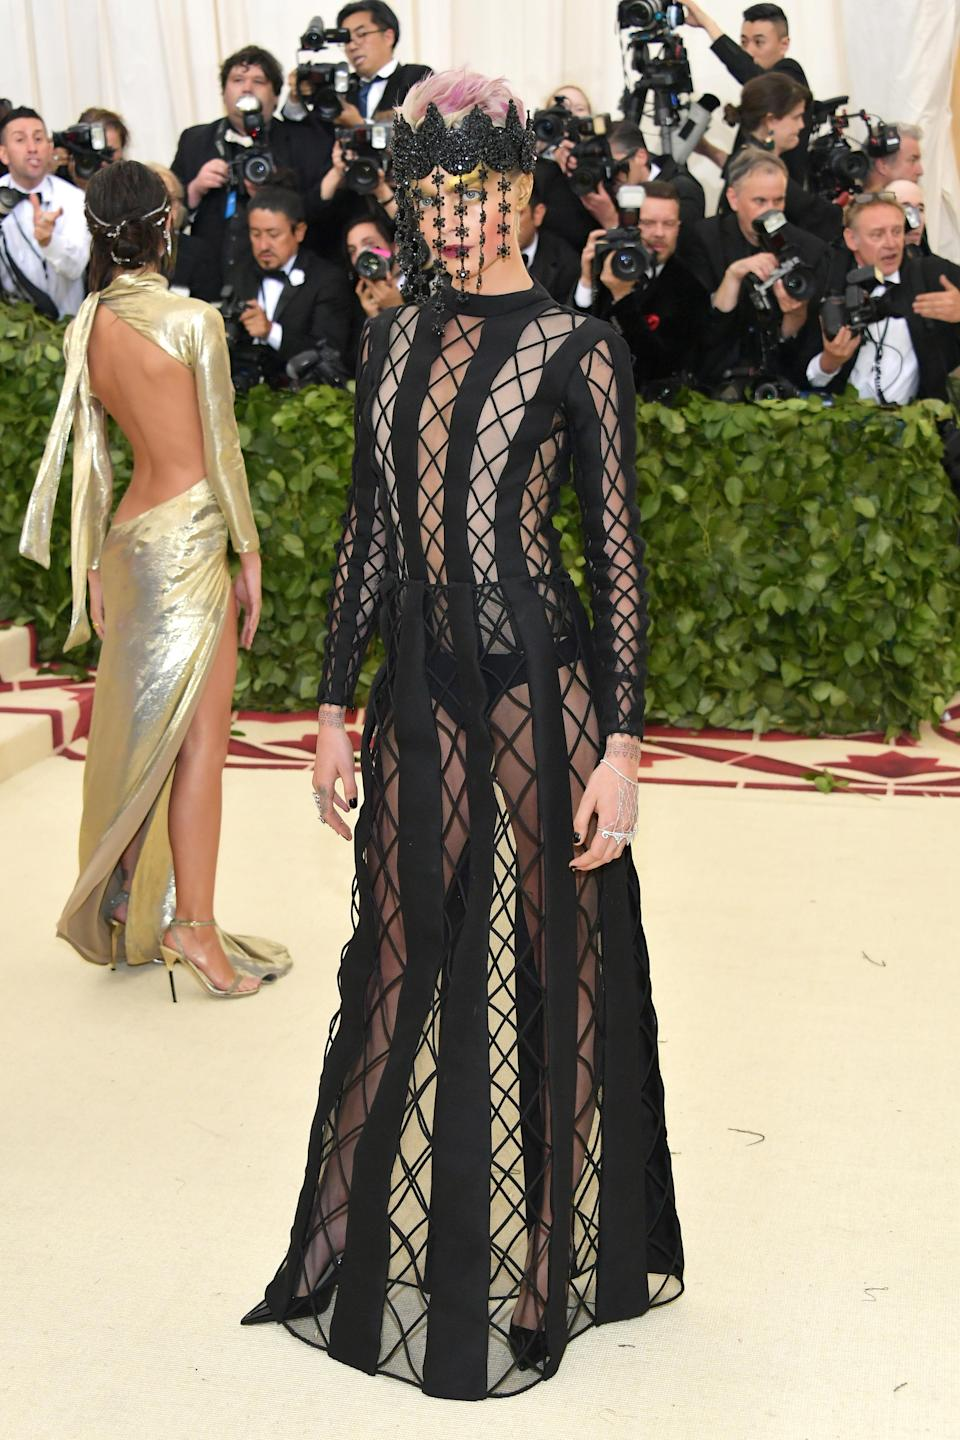 <p>Of course it wouldn't be a list of this year's most unusual celebrity looks without a Met Gala mention. With the opening of the 'Heavenly Bodies: Fashion and the Catholic Imagination' exhibition, Cara Delevingne chose a sheer Dior dress accessorised with a Marianna Harutunian crown. Her freshly-dyed pink 'do and gold shadow made the ensemble even more memorable. <em>[Photo: Getty]</em> </p>